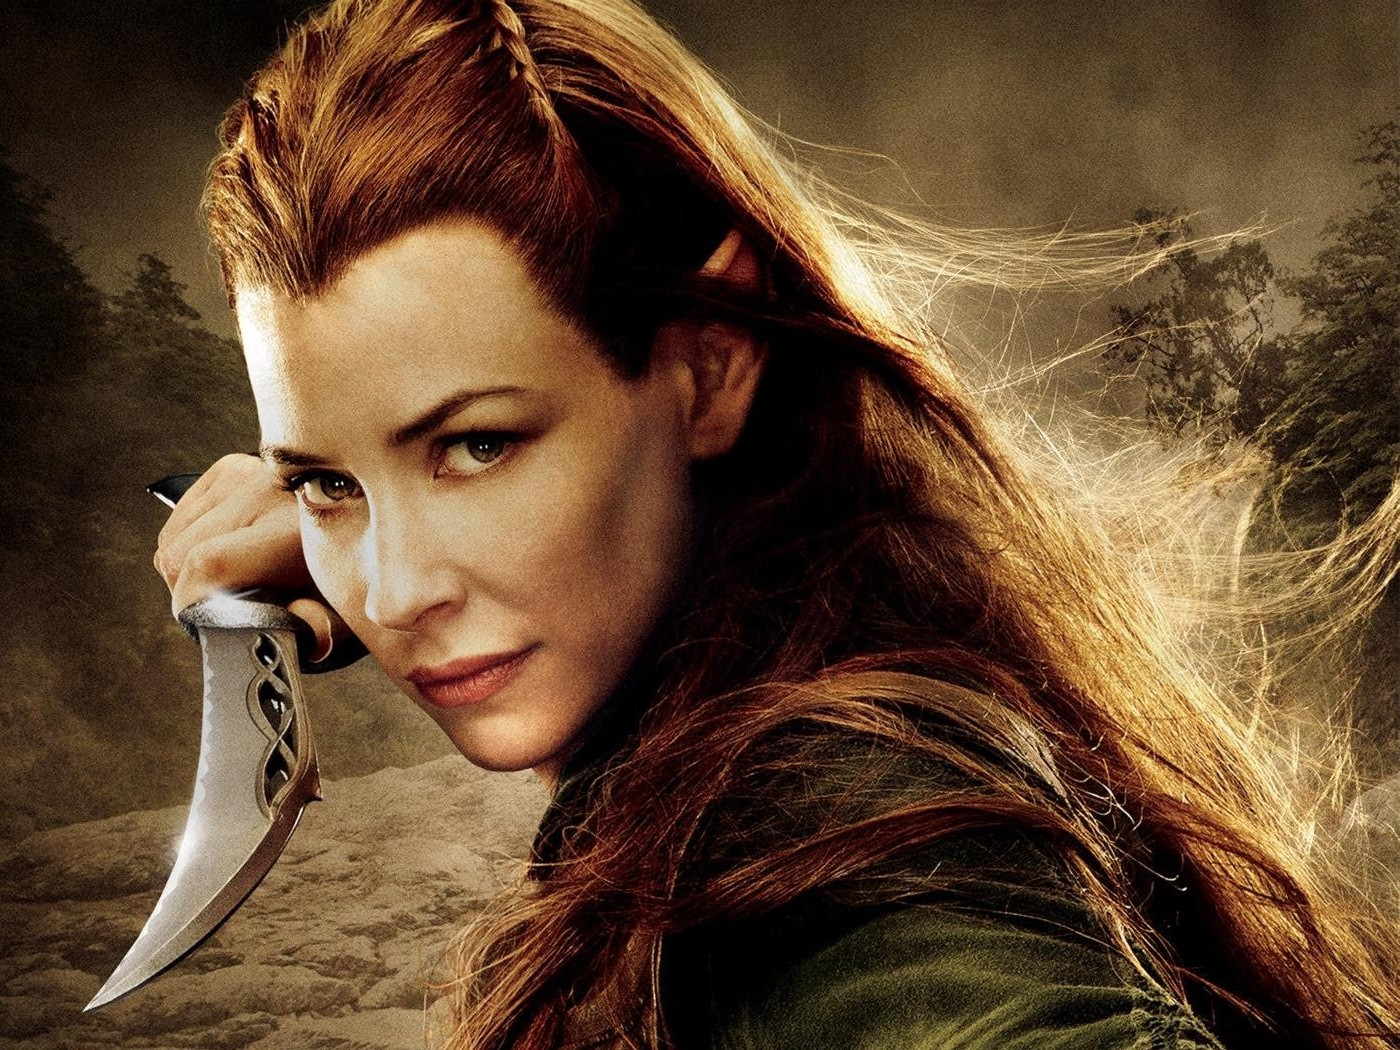 Evangeline Lilly The Hobbit Wallpapers 1258